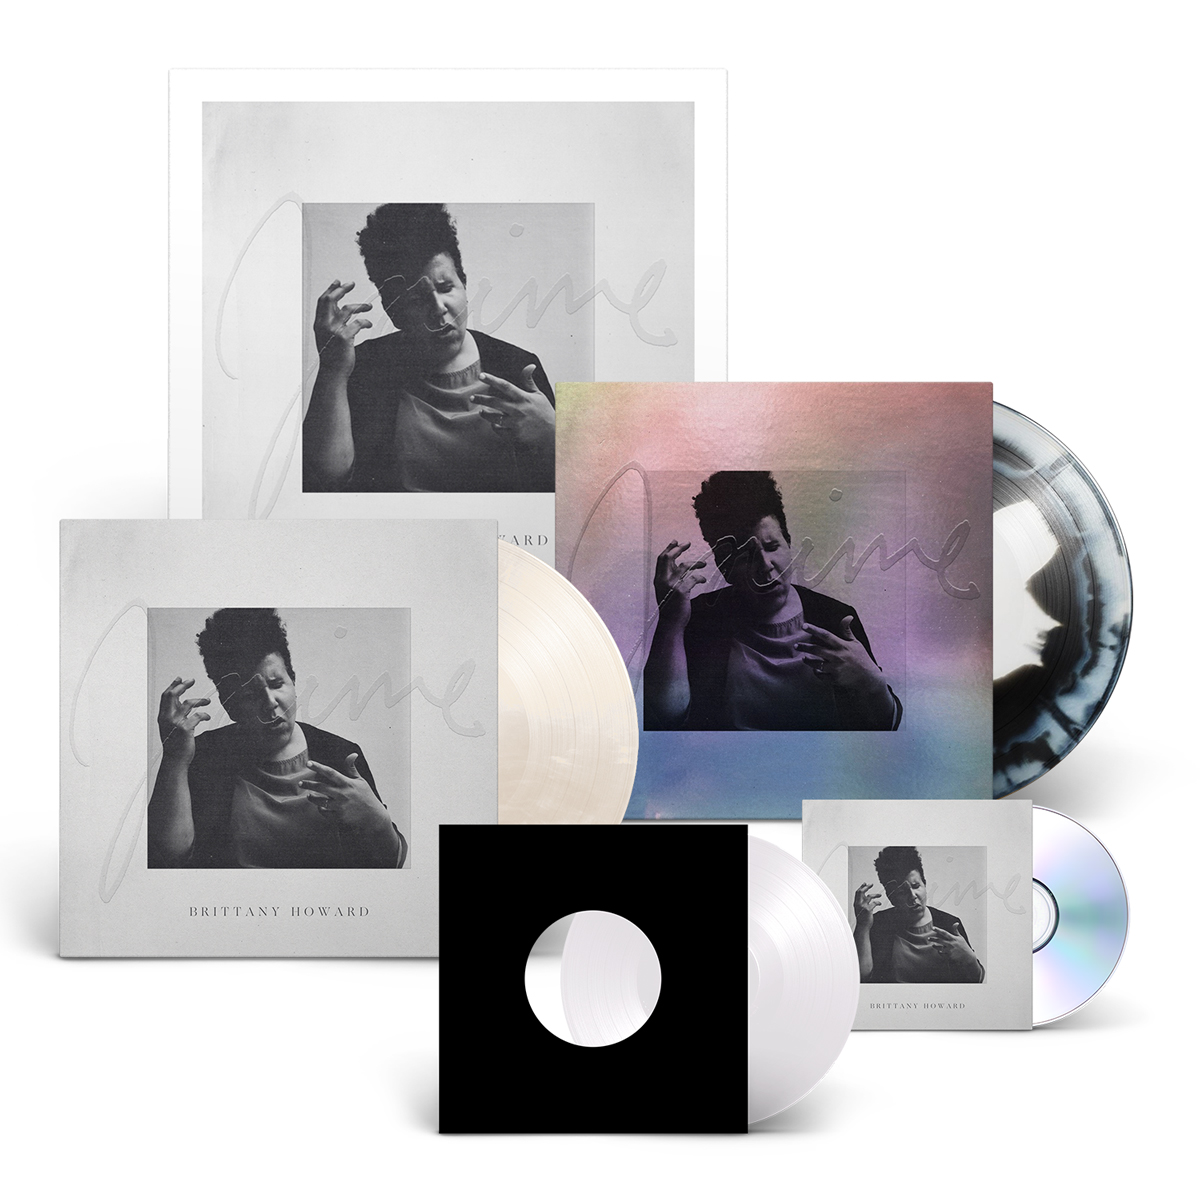 """Brittany Howard - Jaime Limited Edition Deluxe Bundle (Album + Signed Litho + 7"""") (Limited to 500)"""